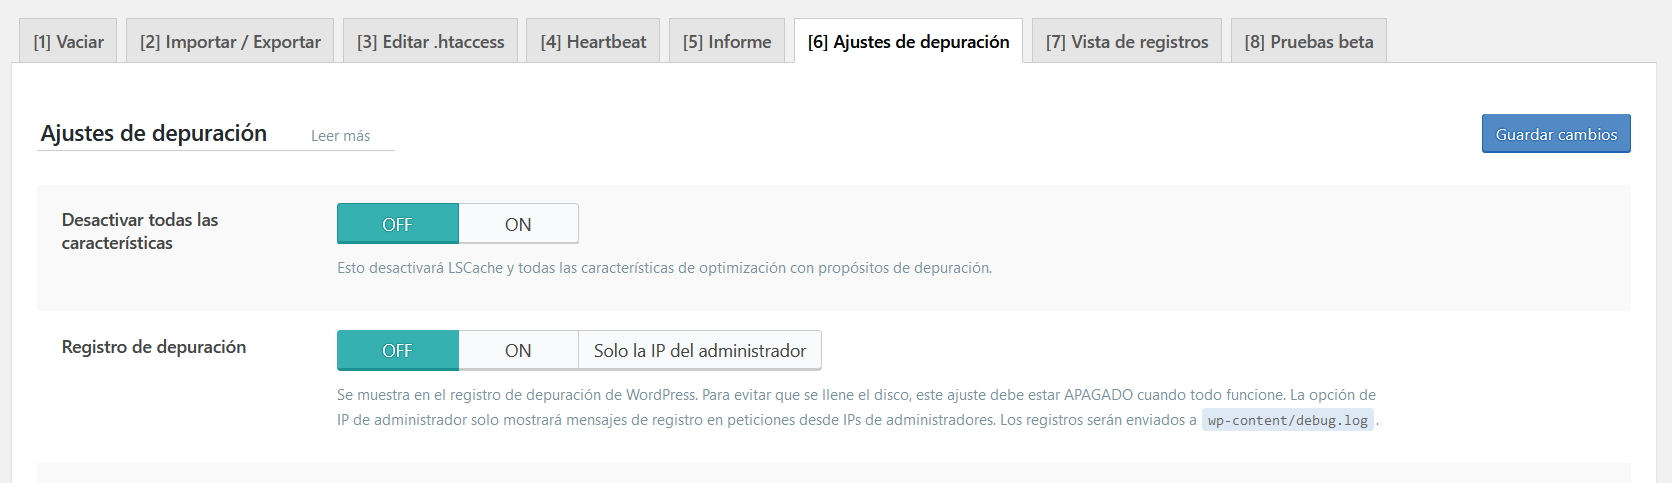 Ajustes de depuración de LiteSpeed Cache for WordPress